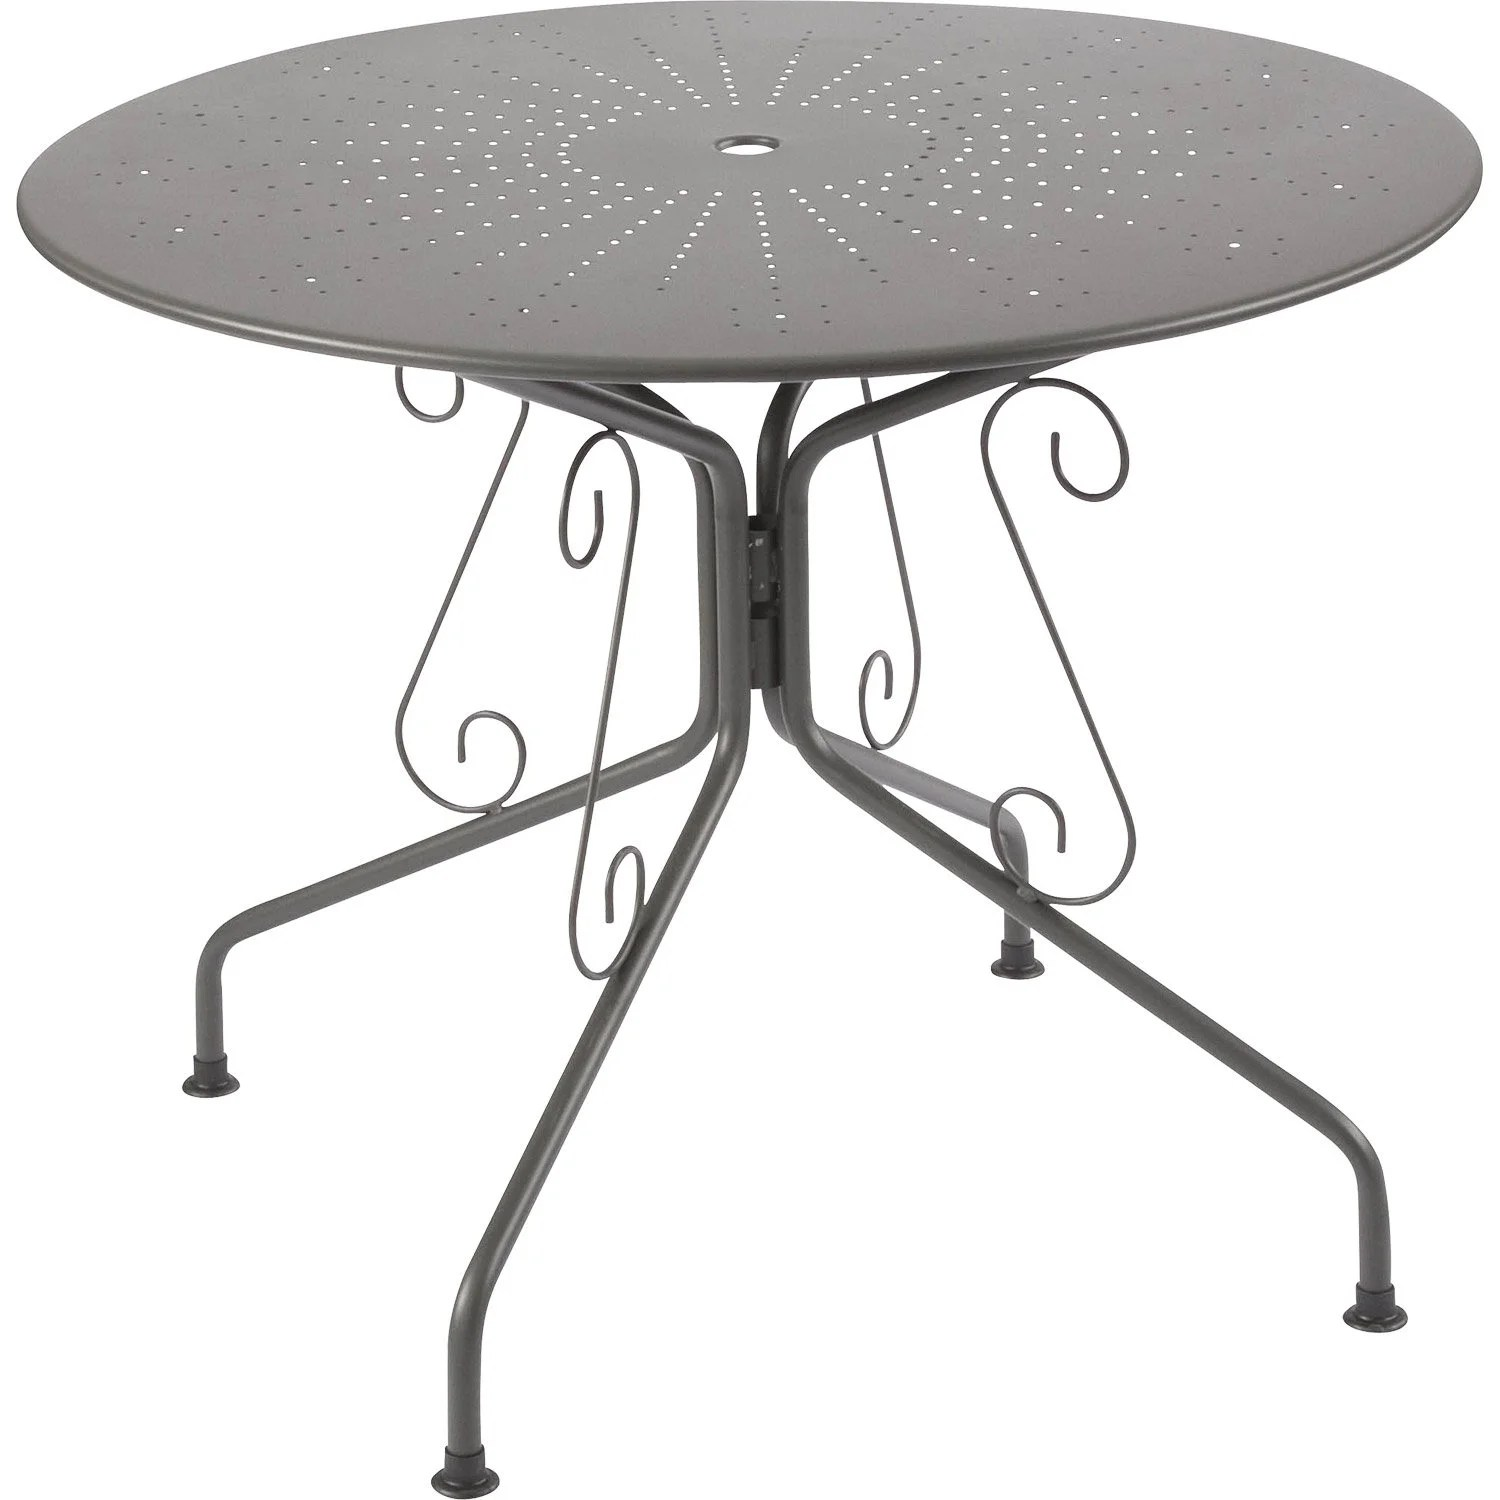 Table Jardin Mosaique Ronde | Mosaique Table Ronde Table De Jardin ...